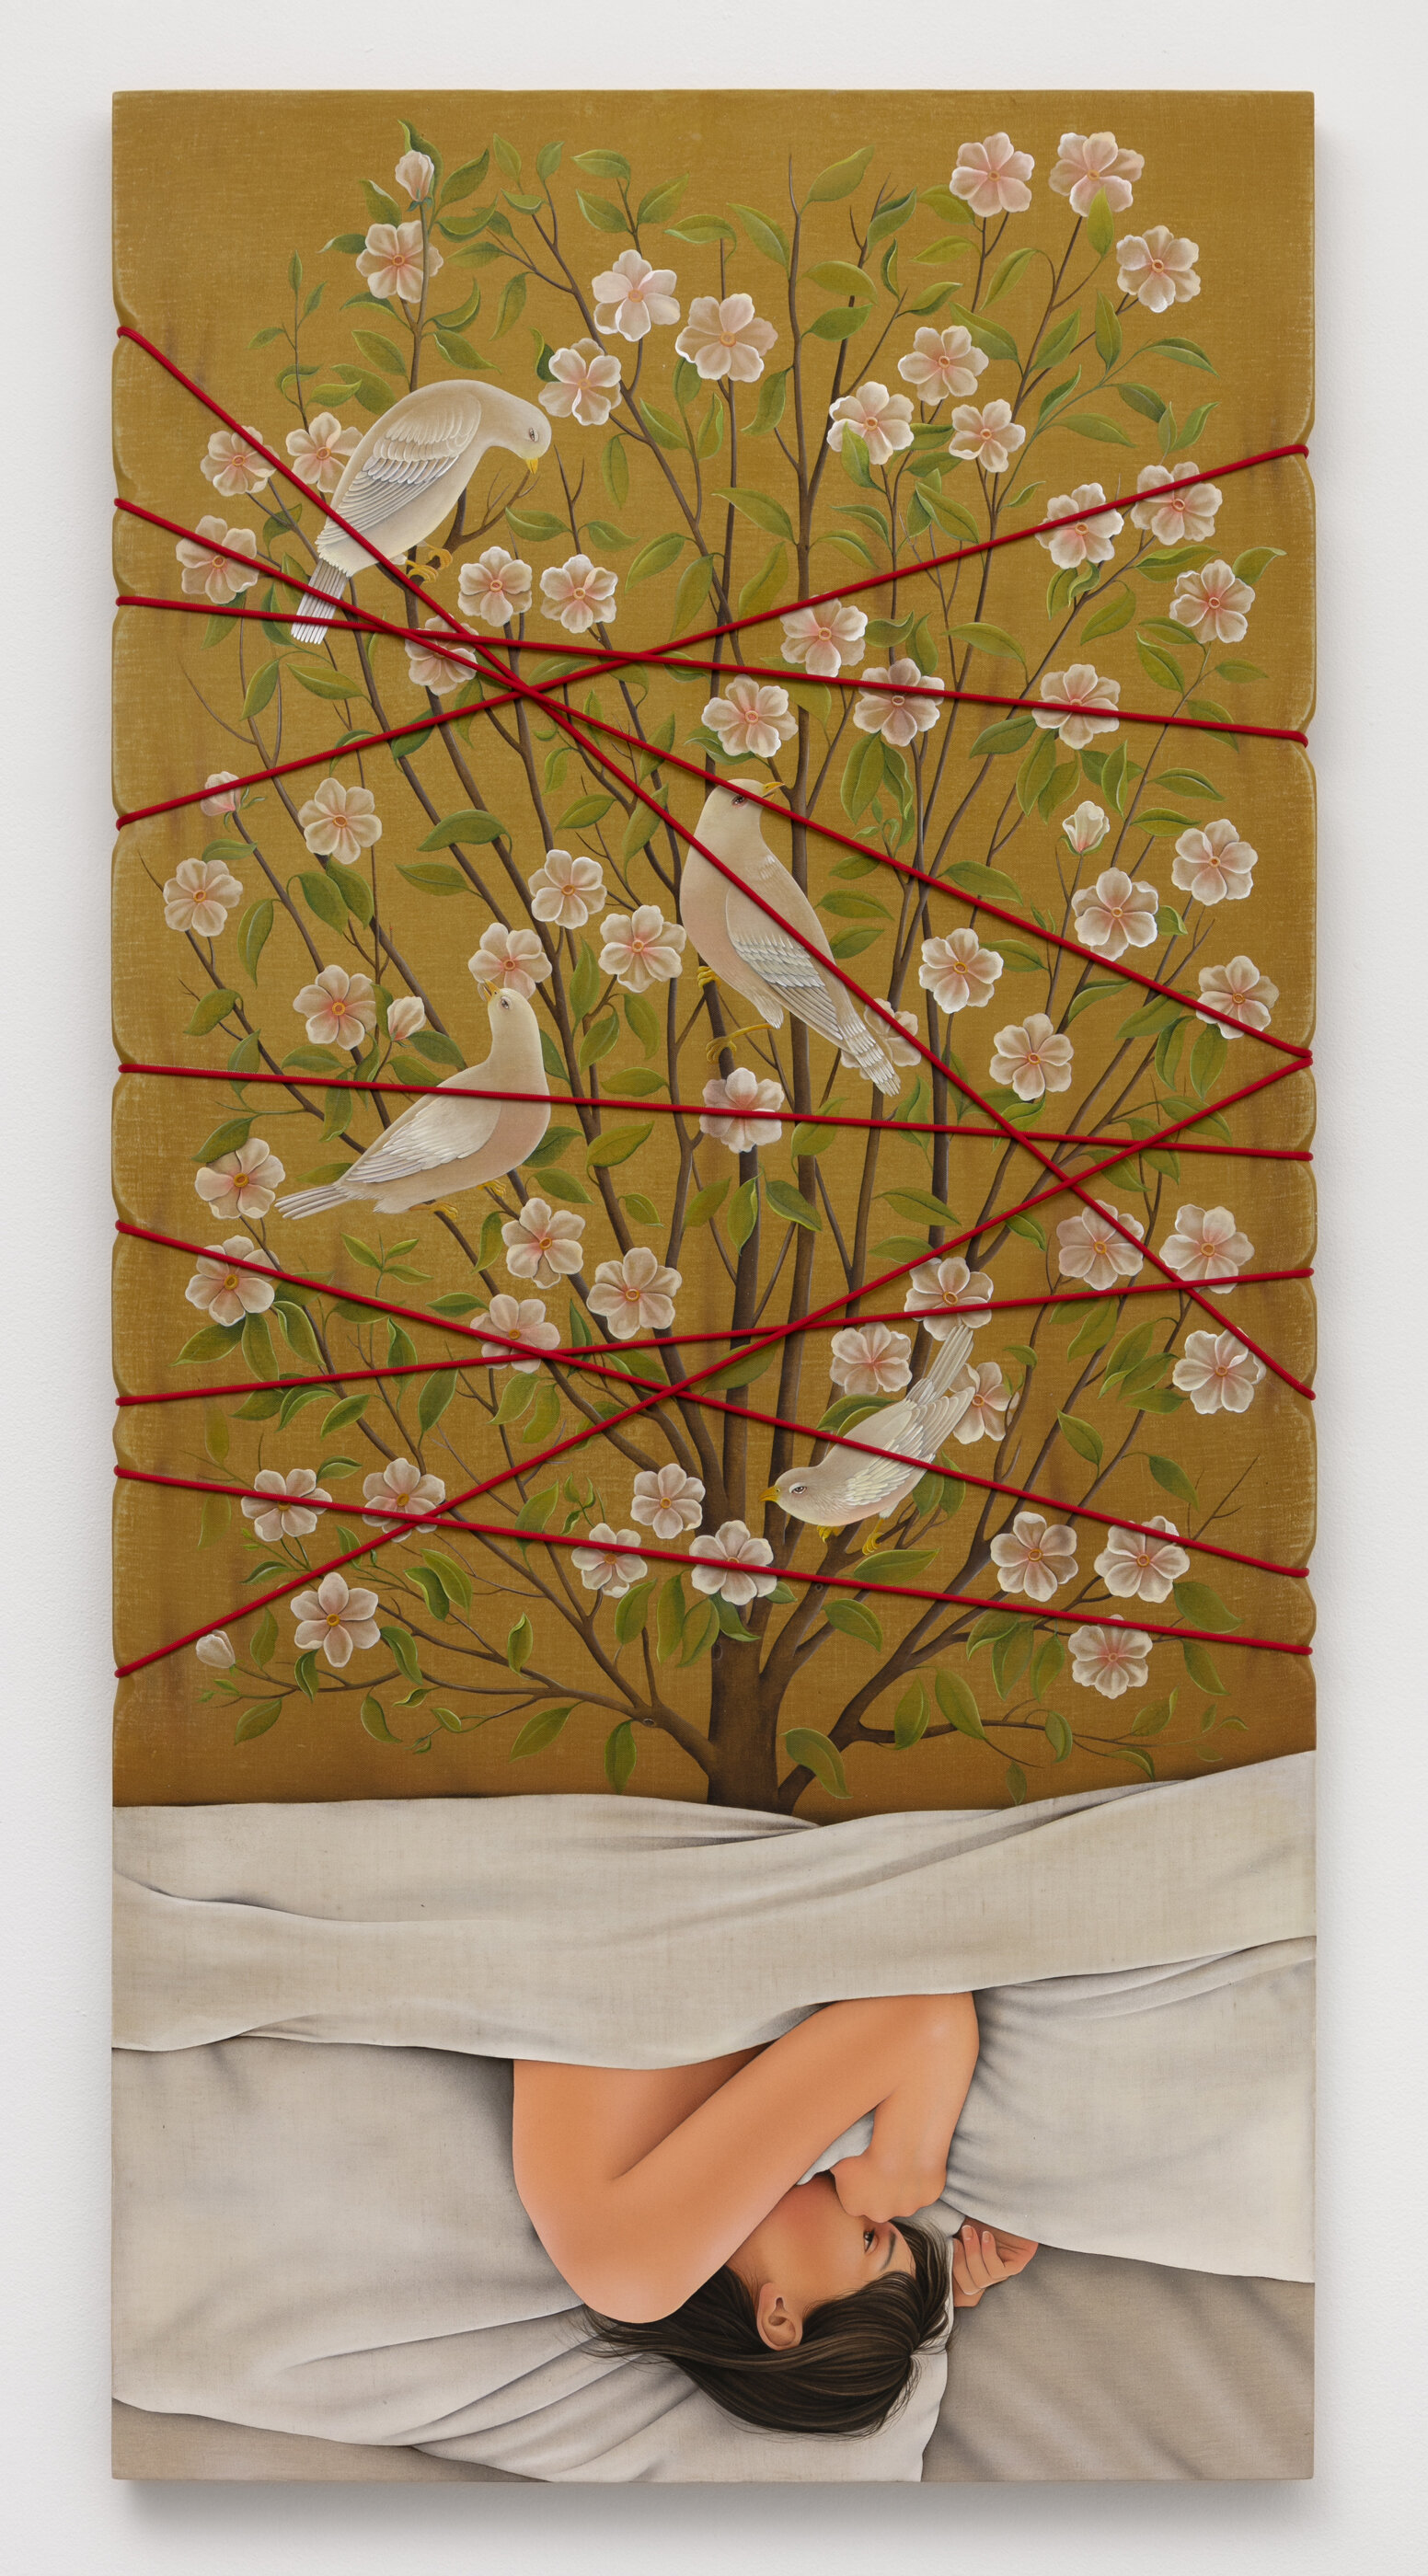 Arghavan Khosravi    Sweet Dreams! (With Eyes Wide Open) , 2019  Acrylic and rope on panel  47 x 23 3/4 inches